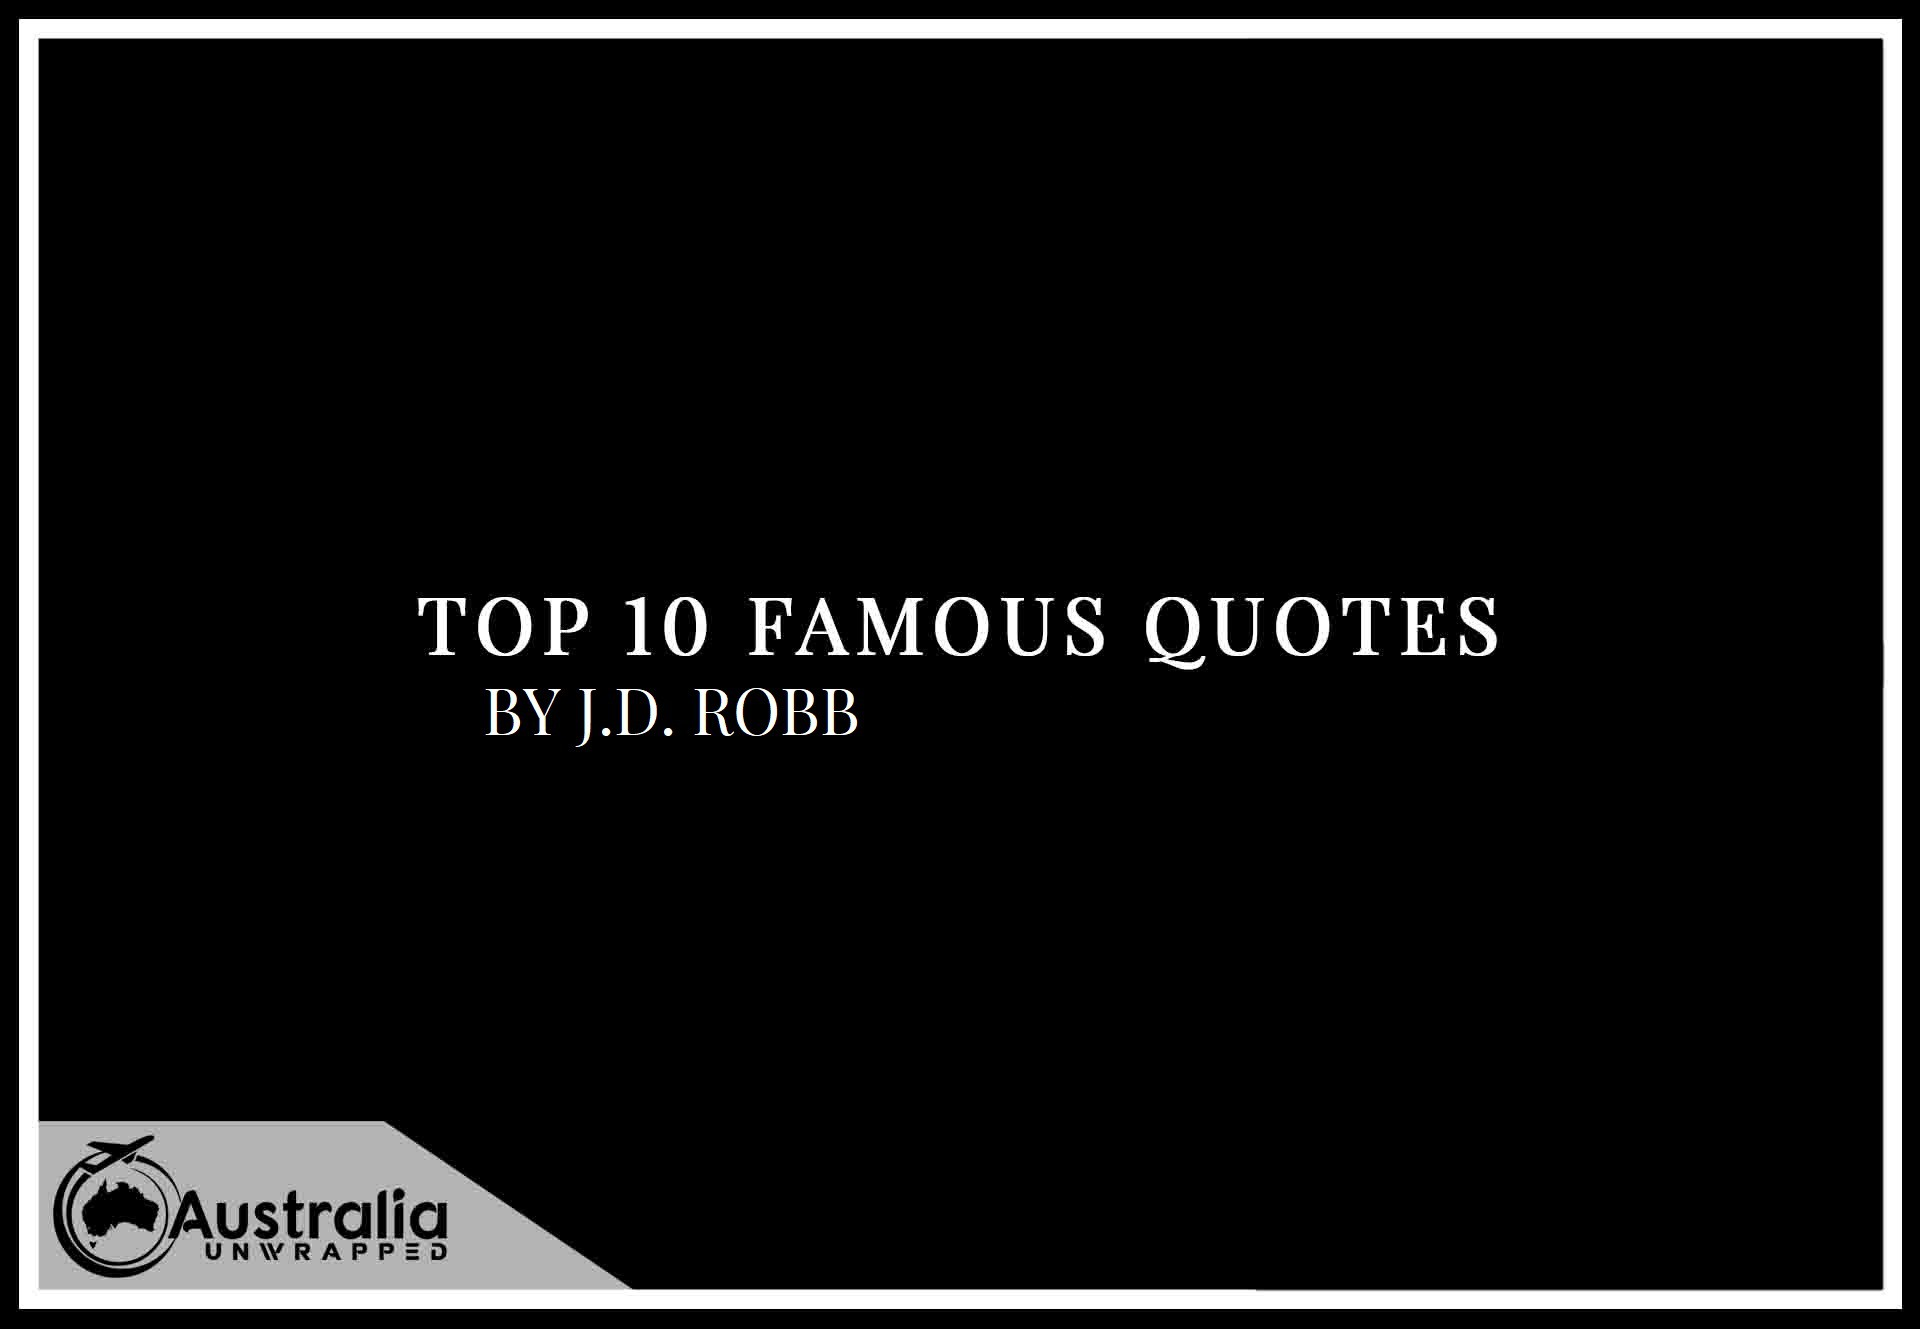 Top 10 Famous Quotes by Author J.D. Robb